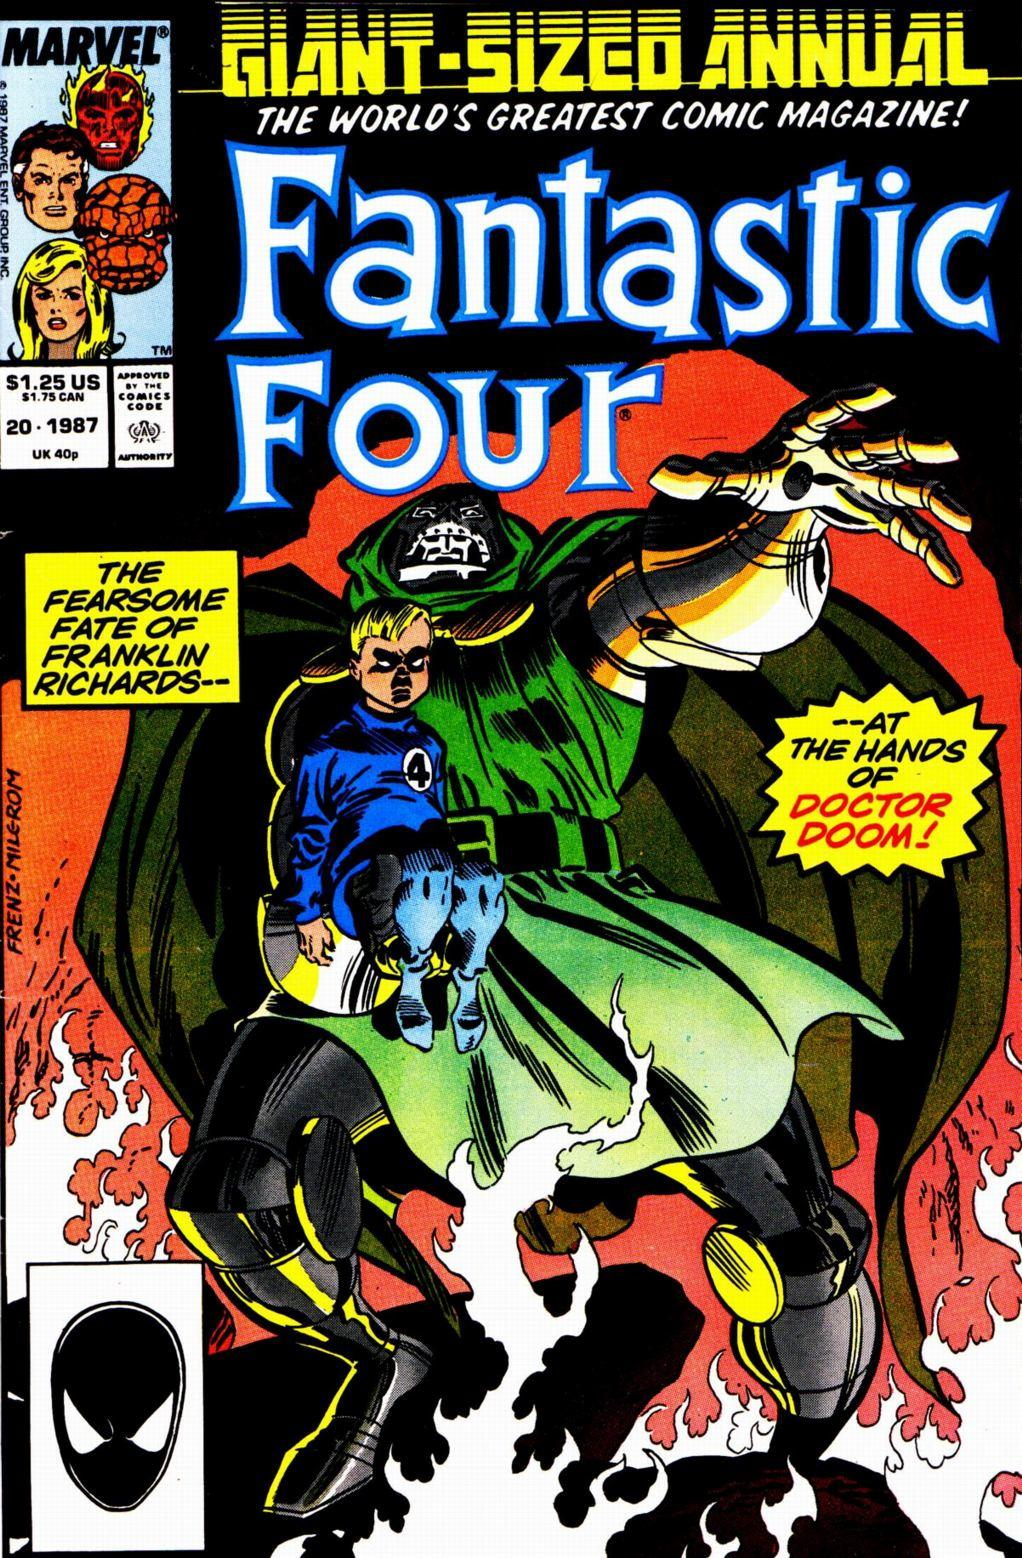 Fantastic Four Vol. 1 #20